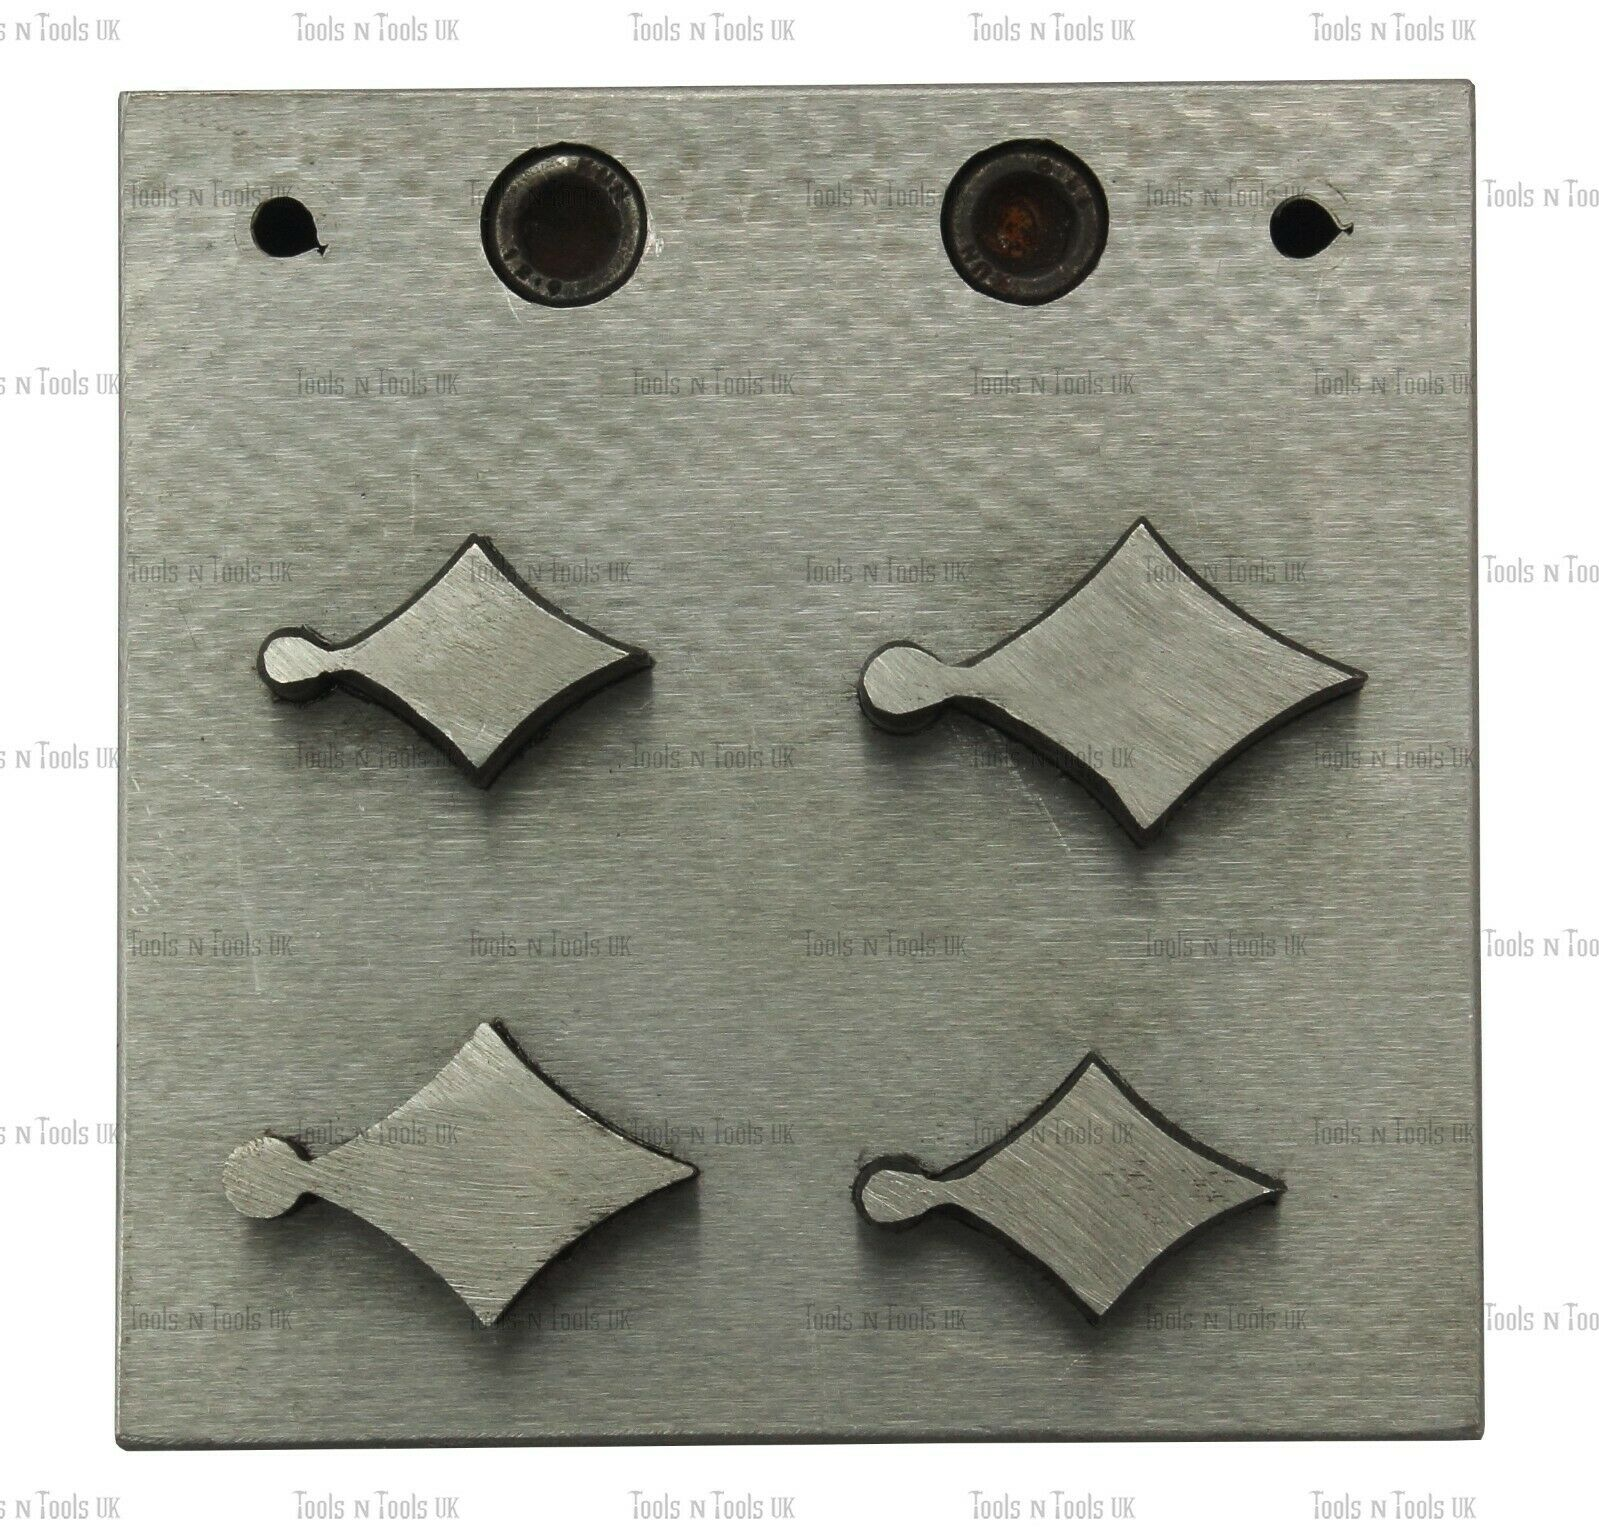 4 PUNCHS KITE DESIGN STEEL DISC CUTTERS JEWELLERY DAPPING CUT METAL SHEETS TOOL